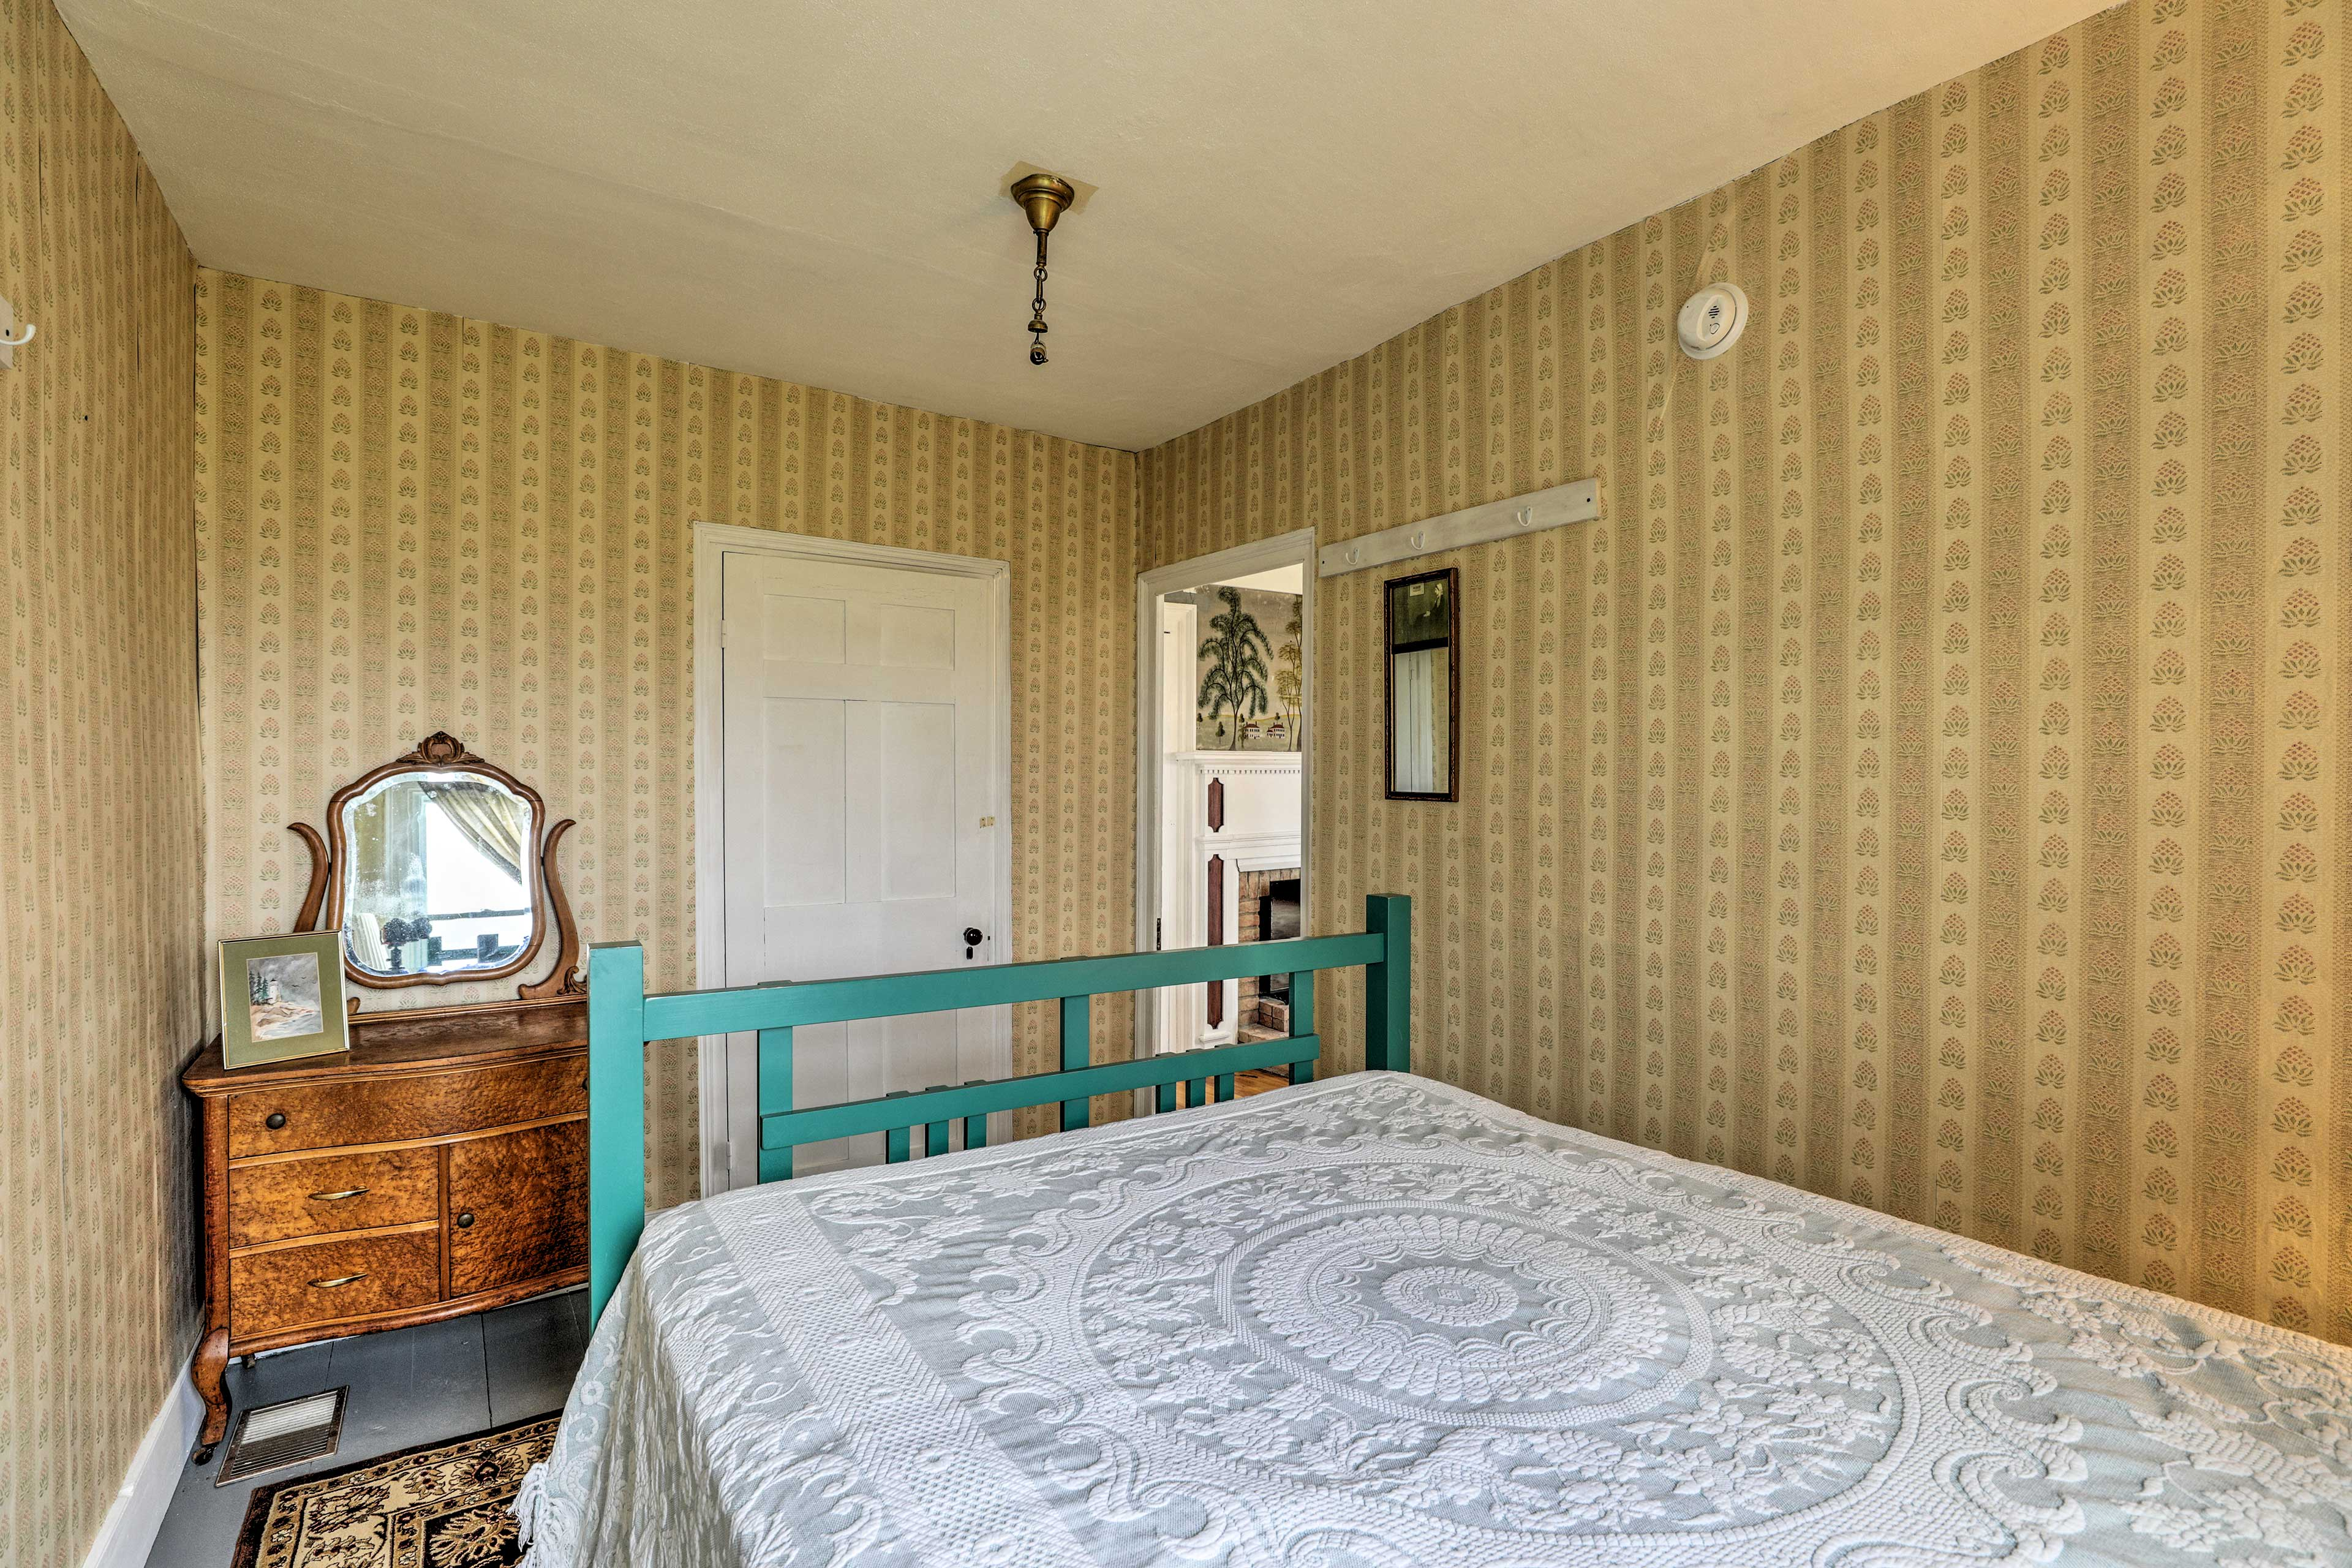 This bedroom also has a nightstand for getting ready each morning.